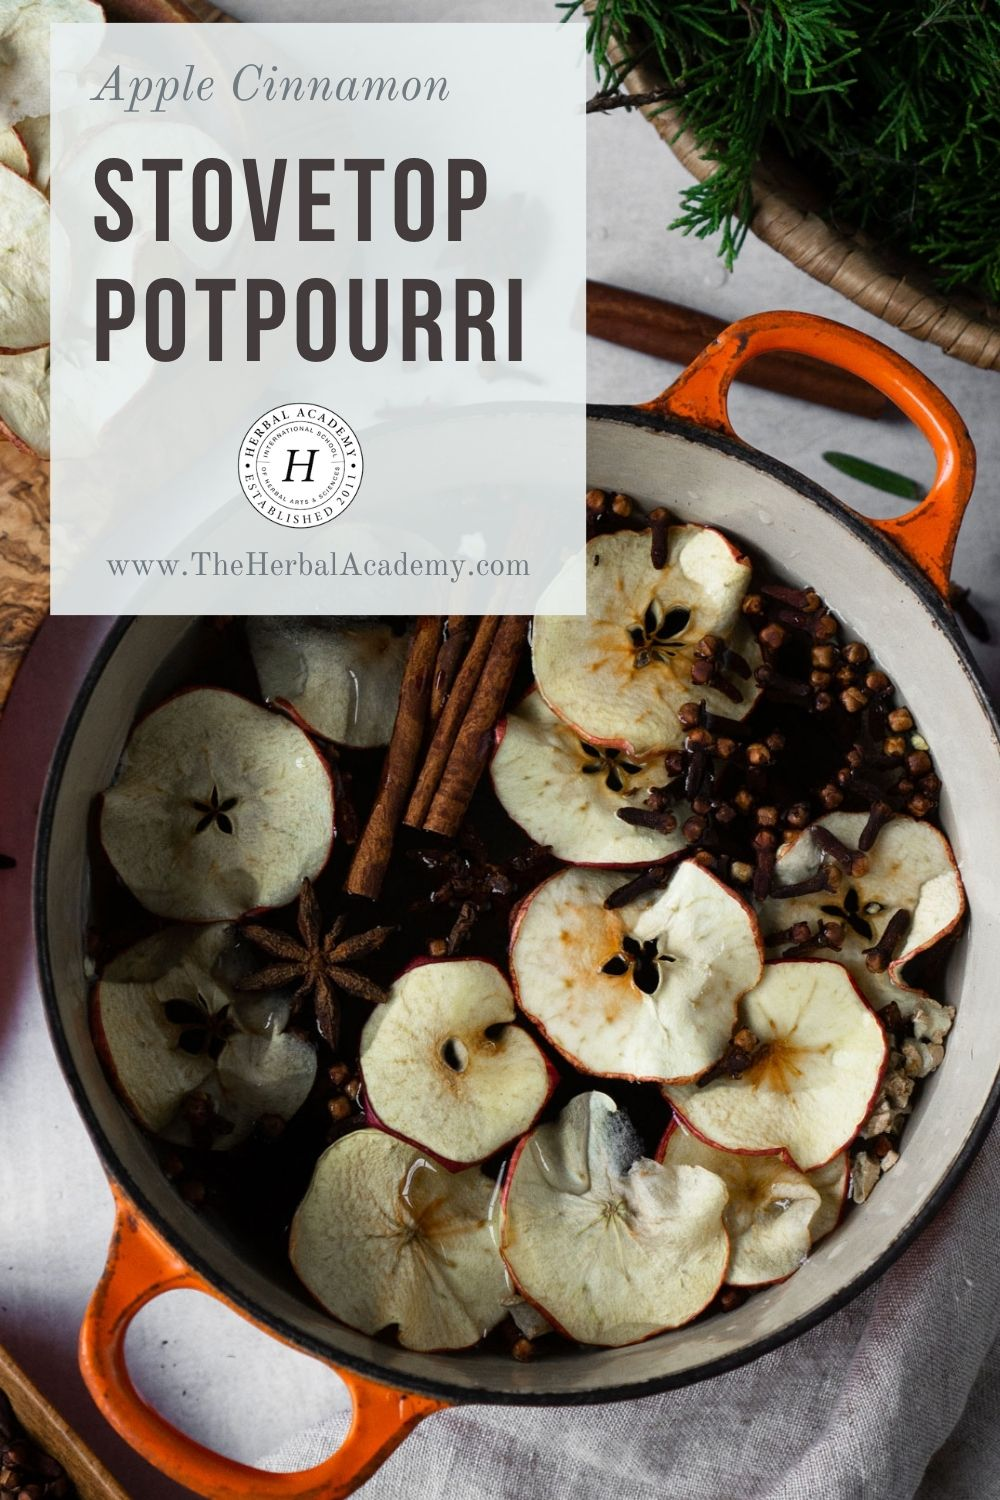 Apple Cinnamon Stovetop Potpourri Recipe